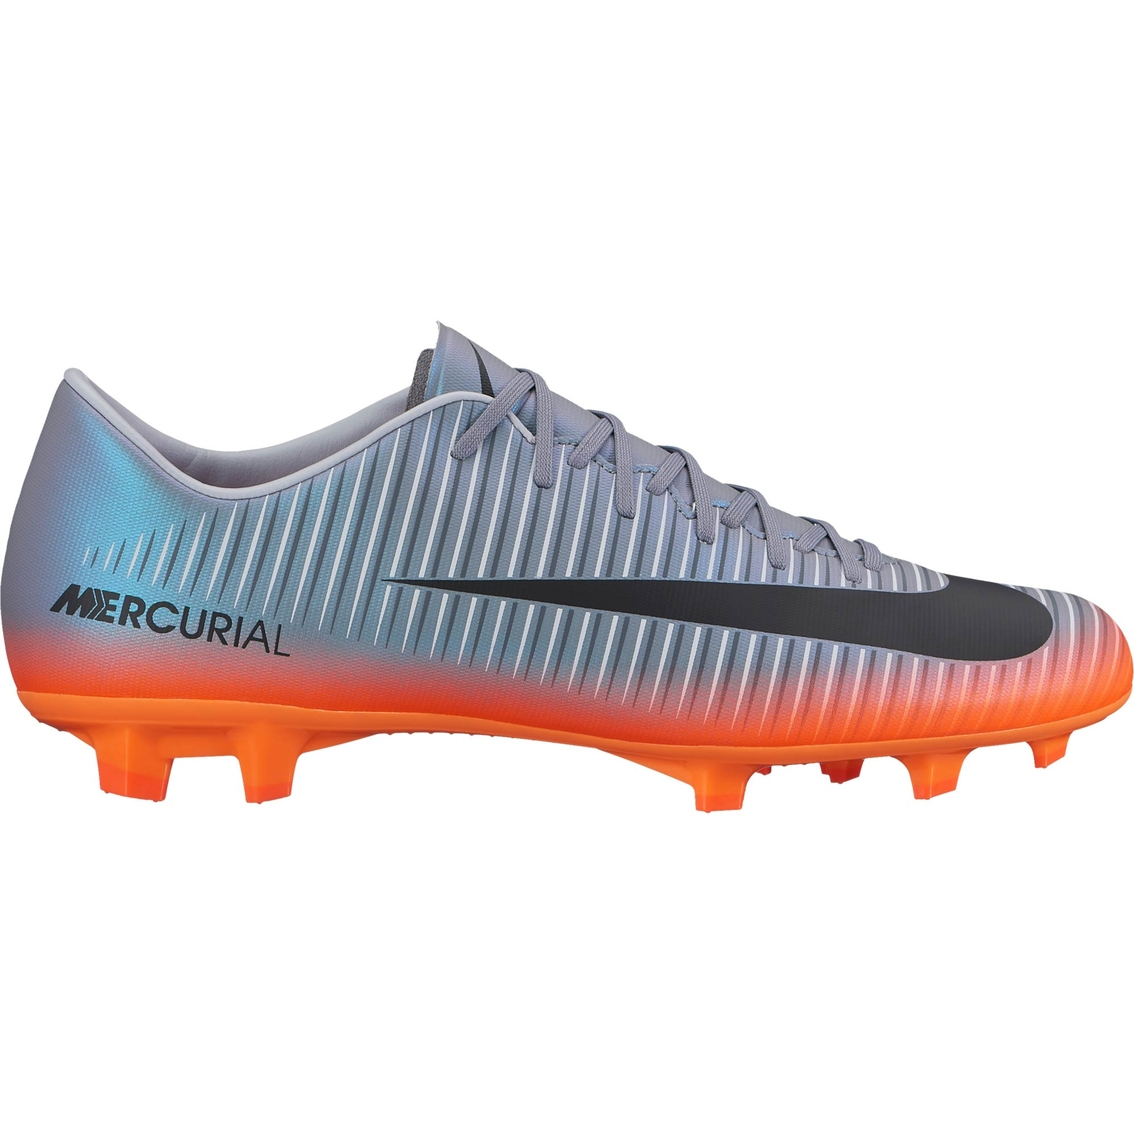 5c1e8ba30dc3 Nike Men's Mercurial Victory Vi Cr7 Firm-ground Soccer Cleats ...